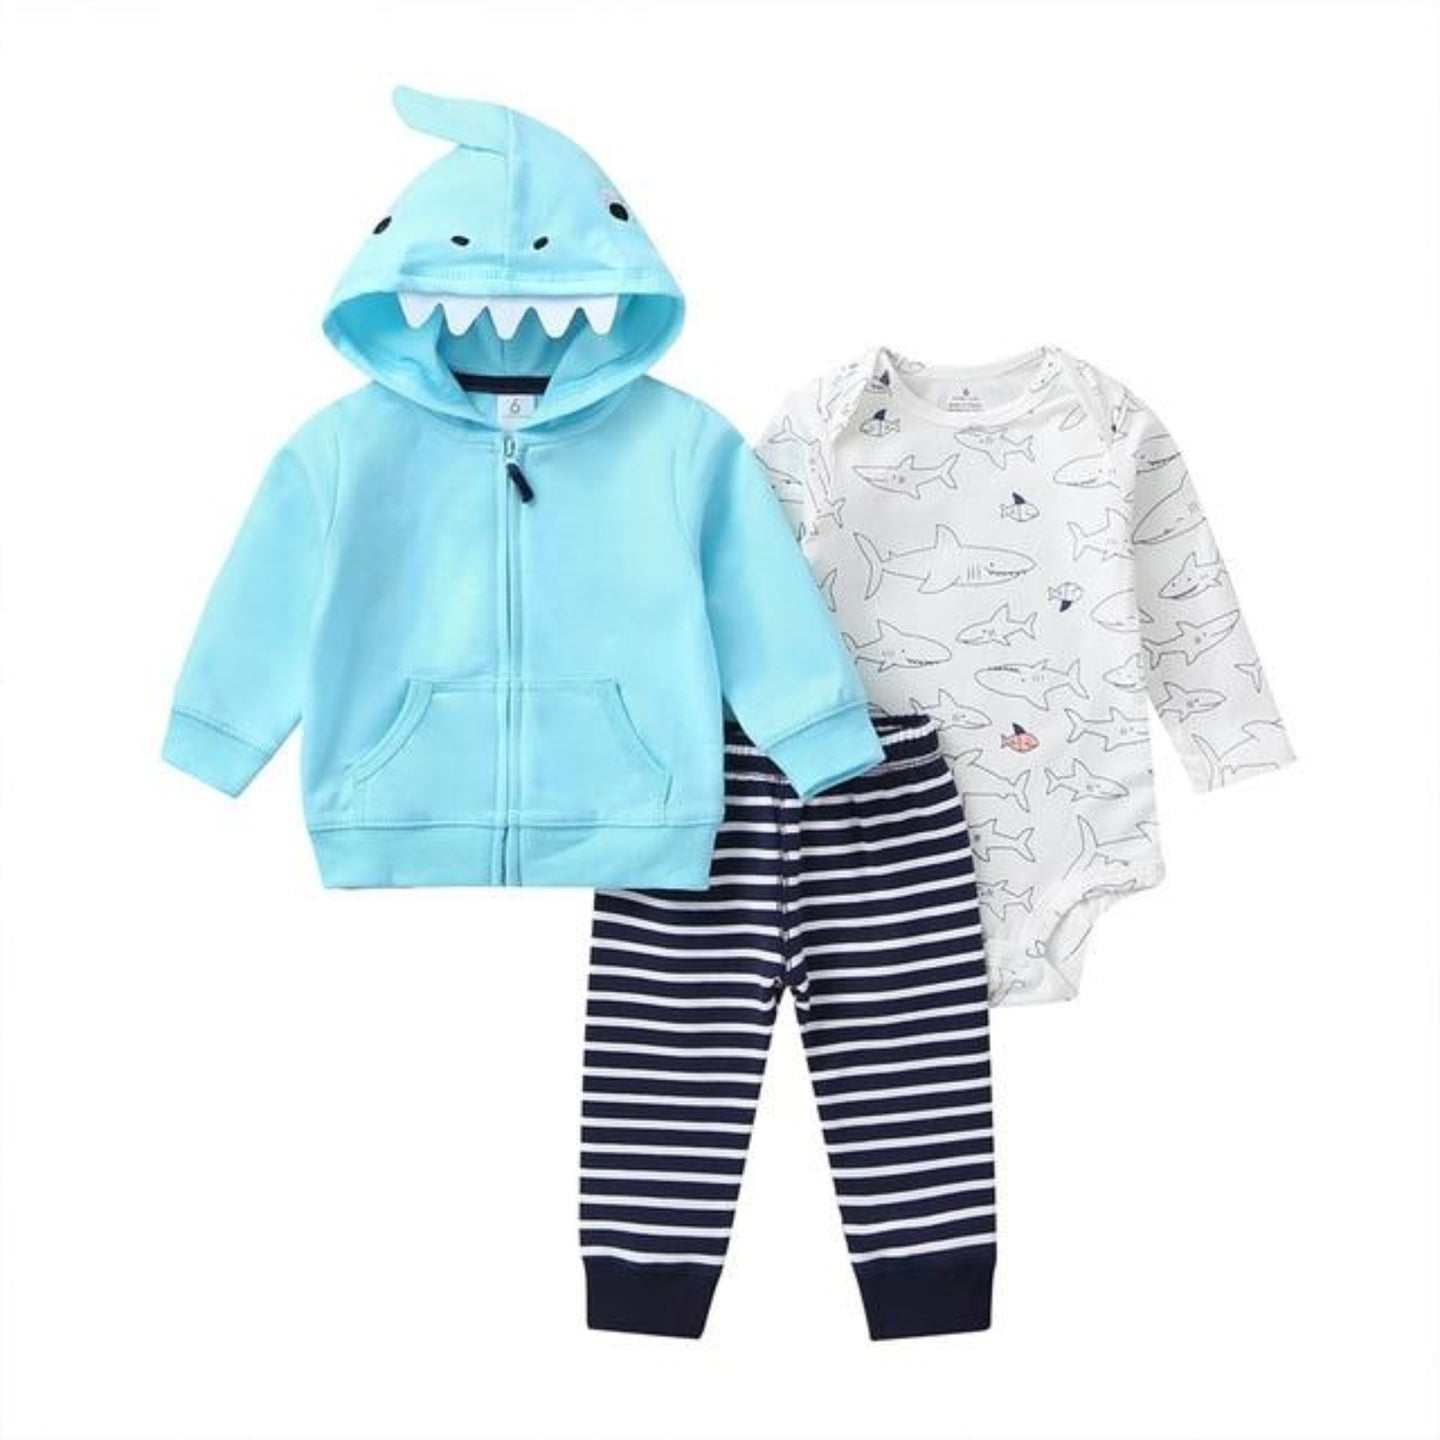 Baby Boy Matching Hoodie, Pants & Onesie Bodysuit Sets - Camanda Baby - baby blue shark zippered hoodie with shark teeth and fin decor on hood, black and white striped pants and white shark print long sleeve onesie bodysuit